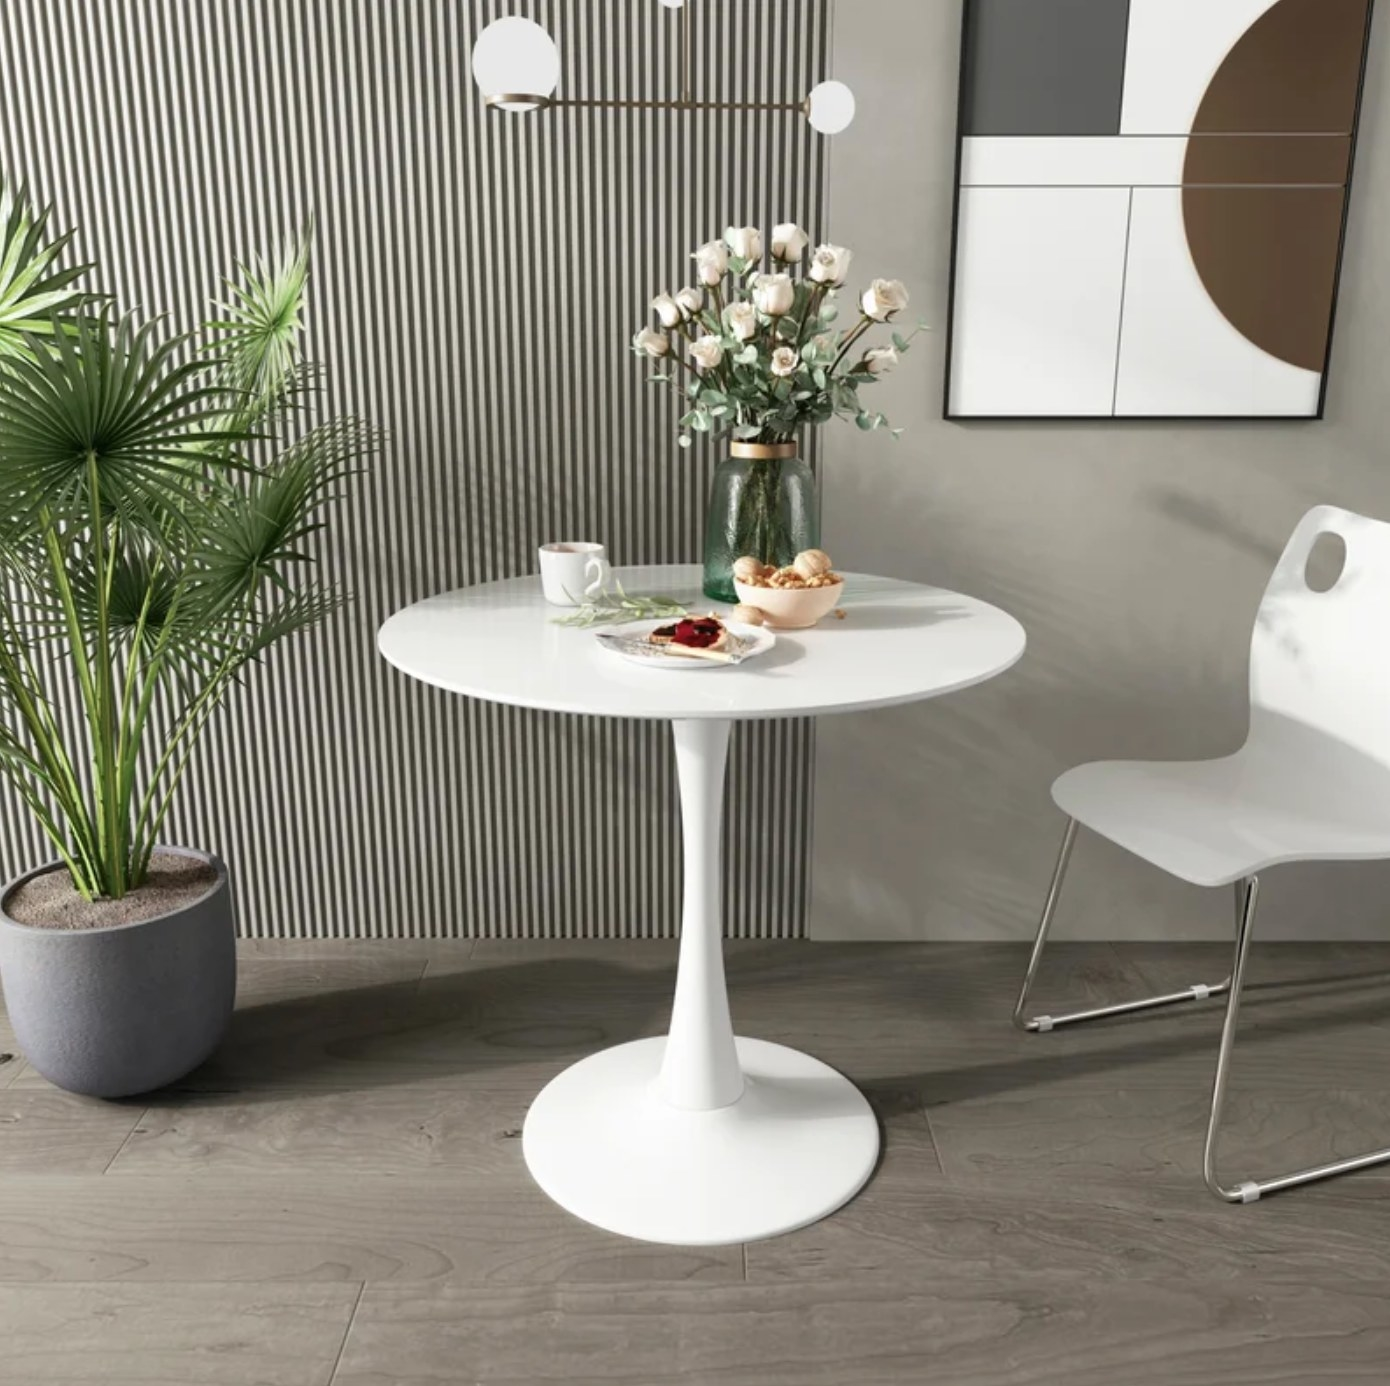 The round dining table in white